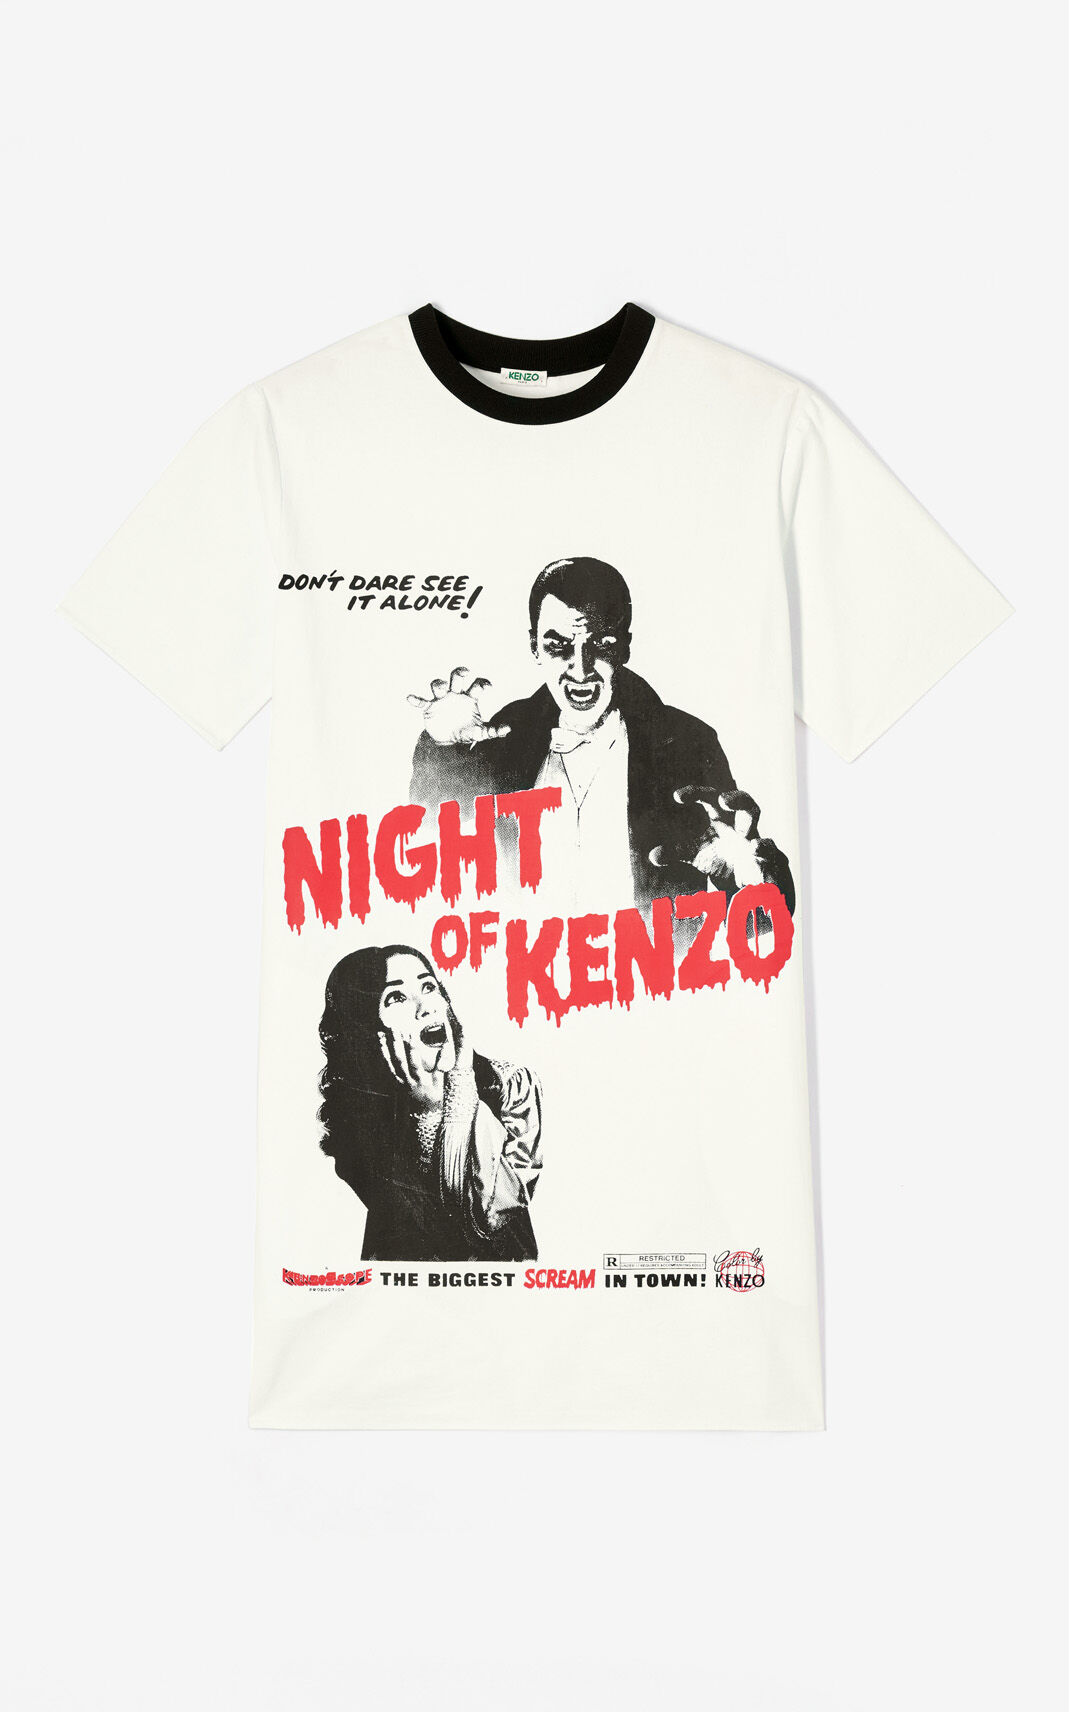 WHITE 'Night of Kenzo' t-shirt dress for women